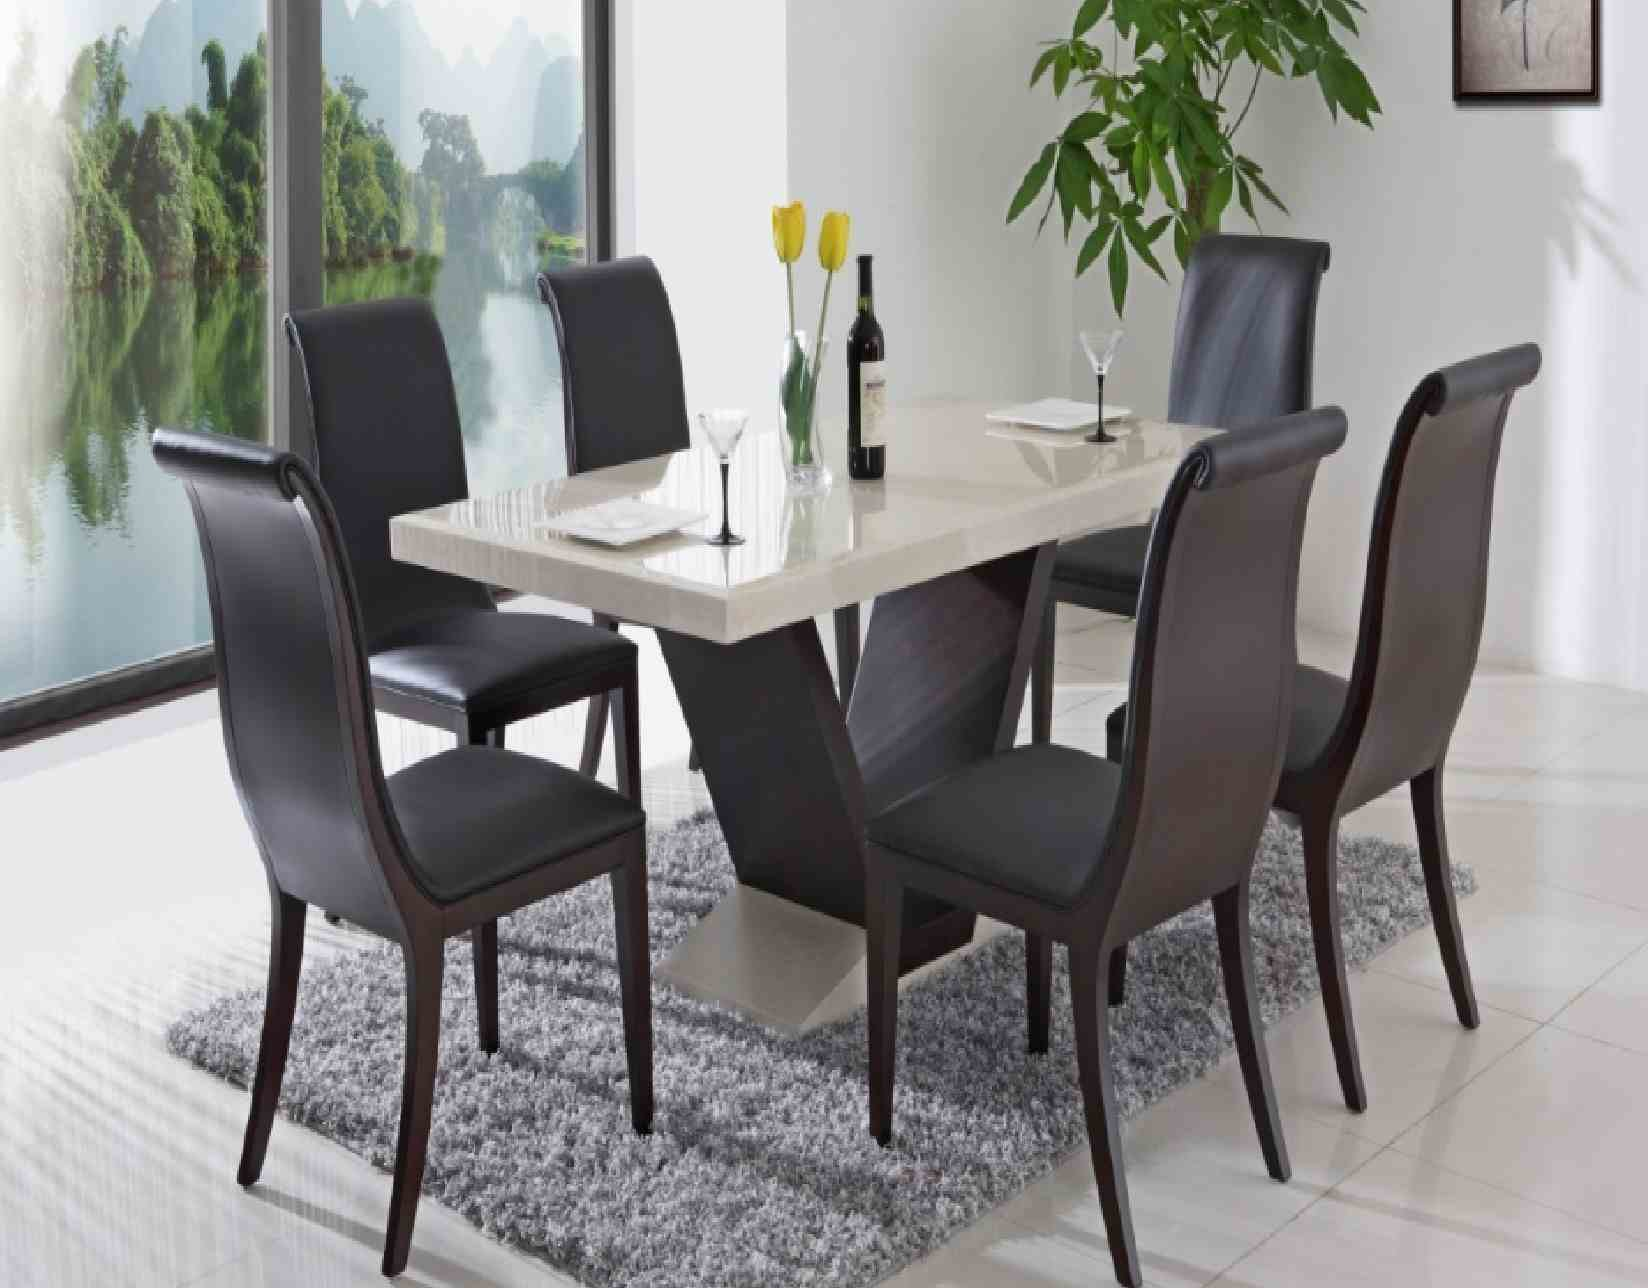 New Unique Dining Room Chairs With Large Dining Room Table Modern Italian Excellent Rectangle Shape Furniture Tables Glass Top Simple Unique Ideas With Dining Room Table With White Chairs Dining Room Dining Room Light Fixtures Black Se